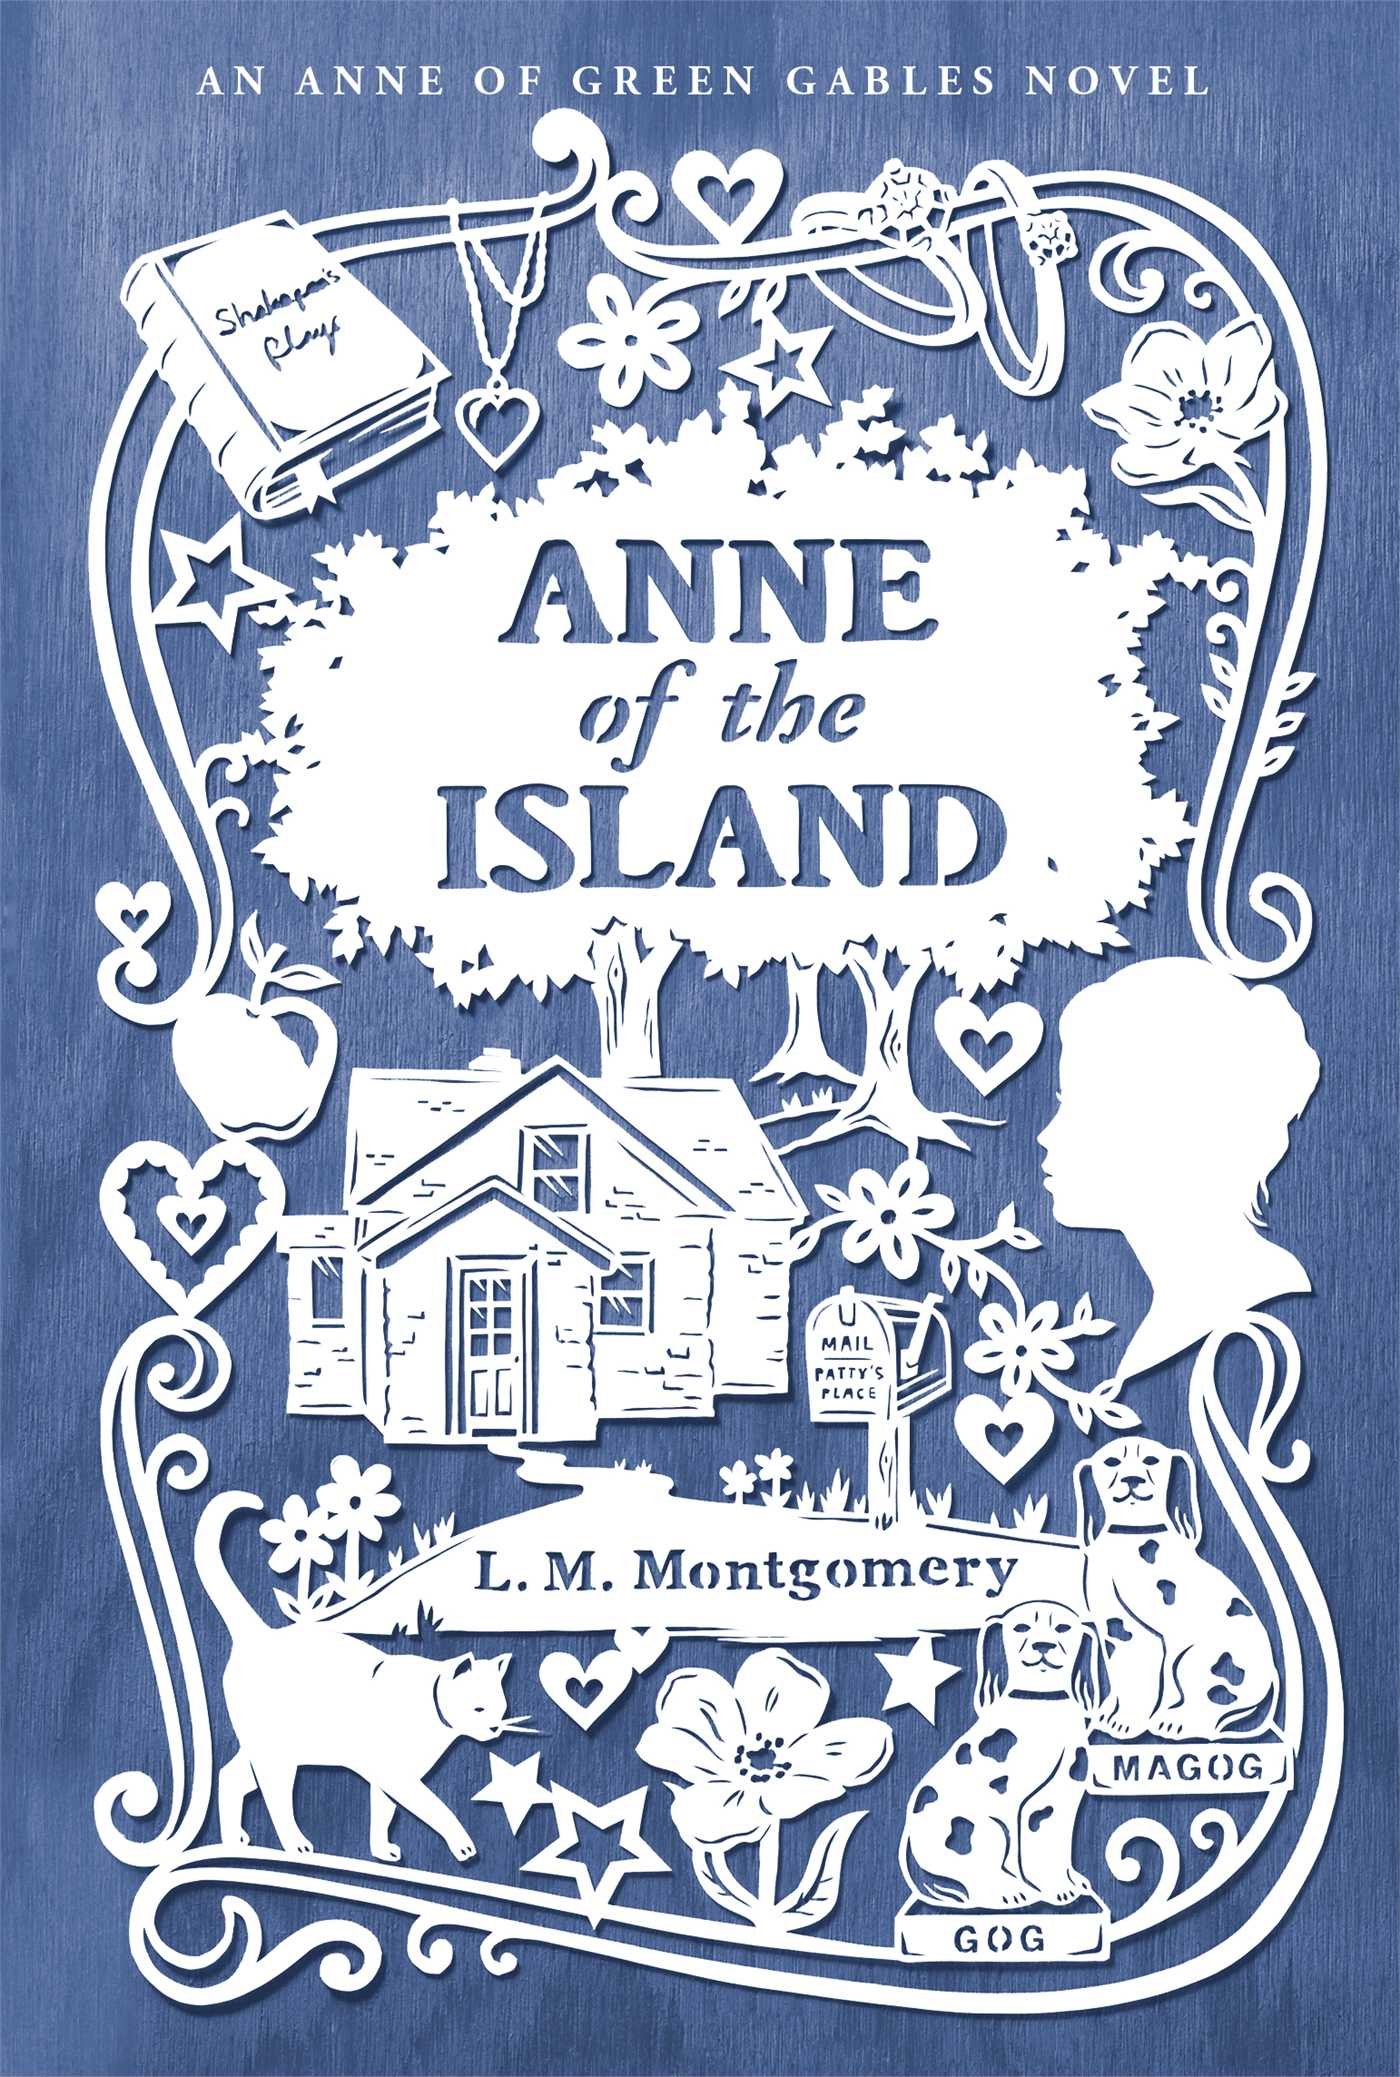 Anne-of-the-island-9781442490048_hr